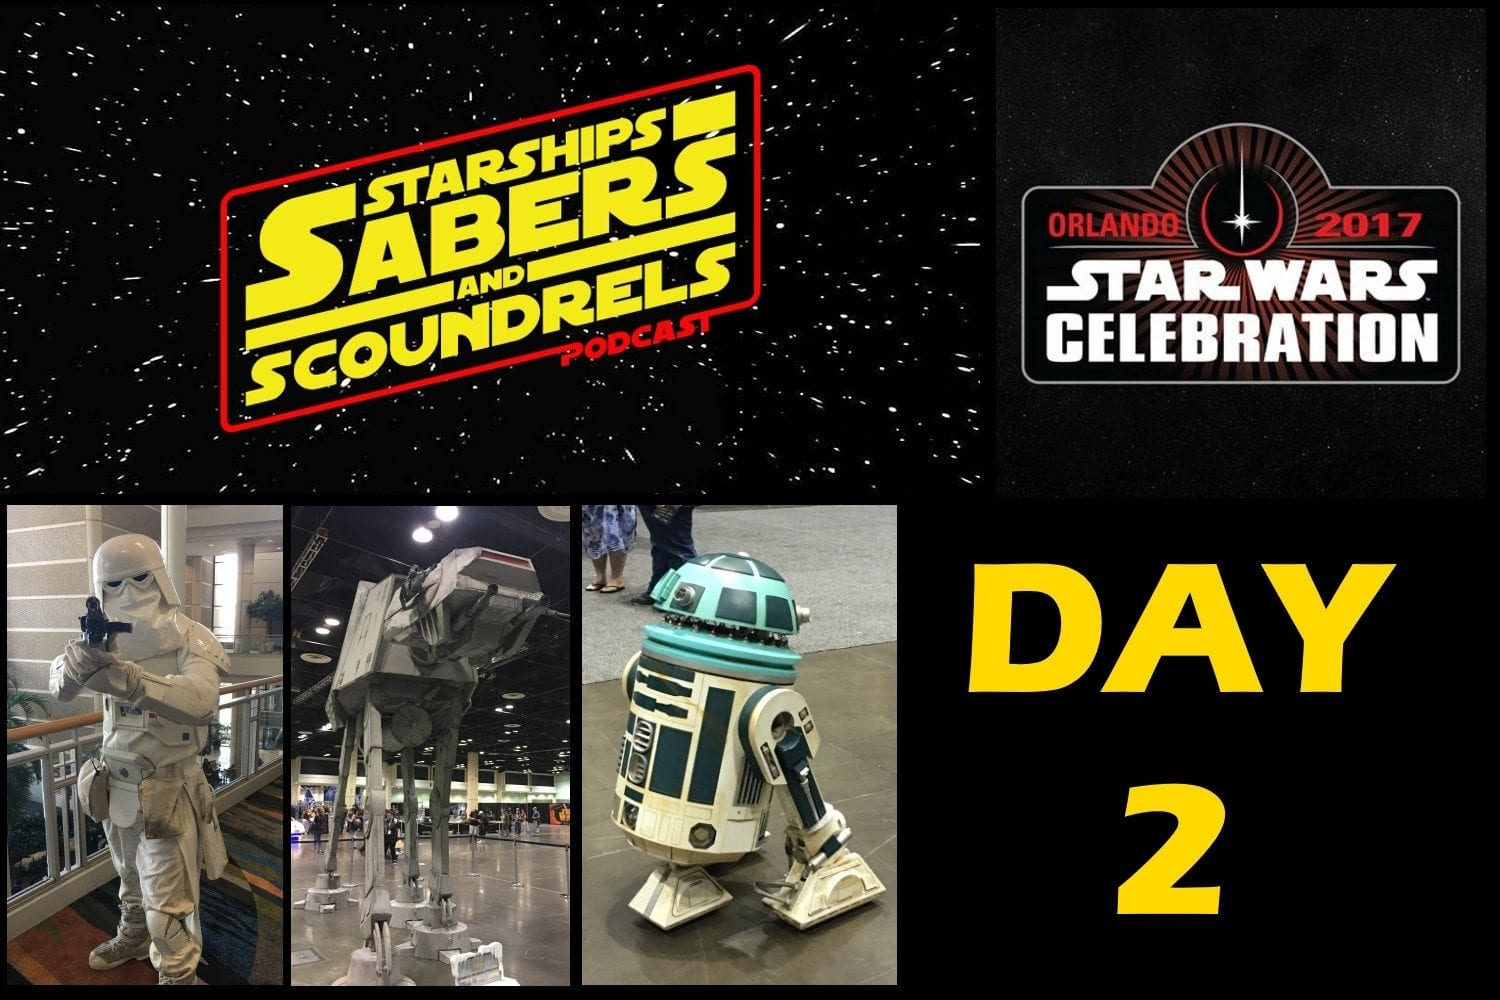 S3 - Starships, Sabers, and Scoundrels - Star Wars Celebration Orlando '17 - Day 2 - The Maker Returns